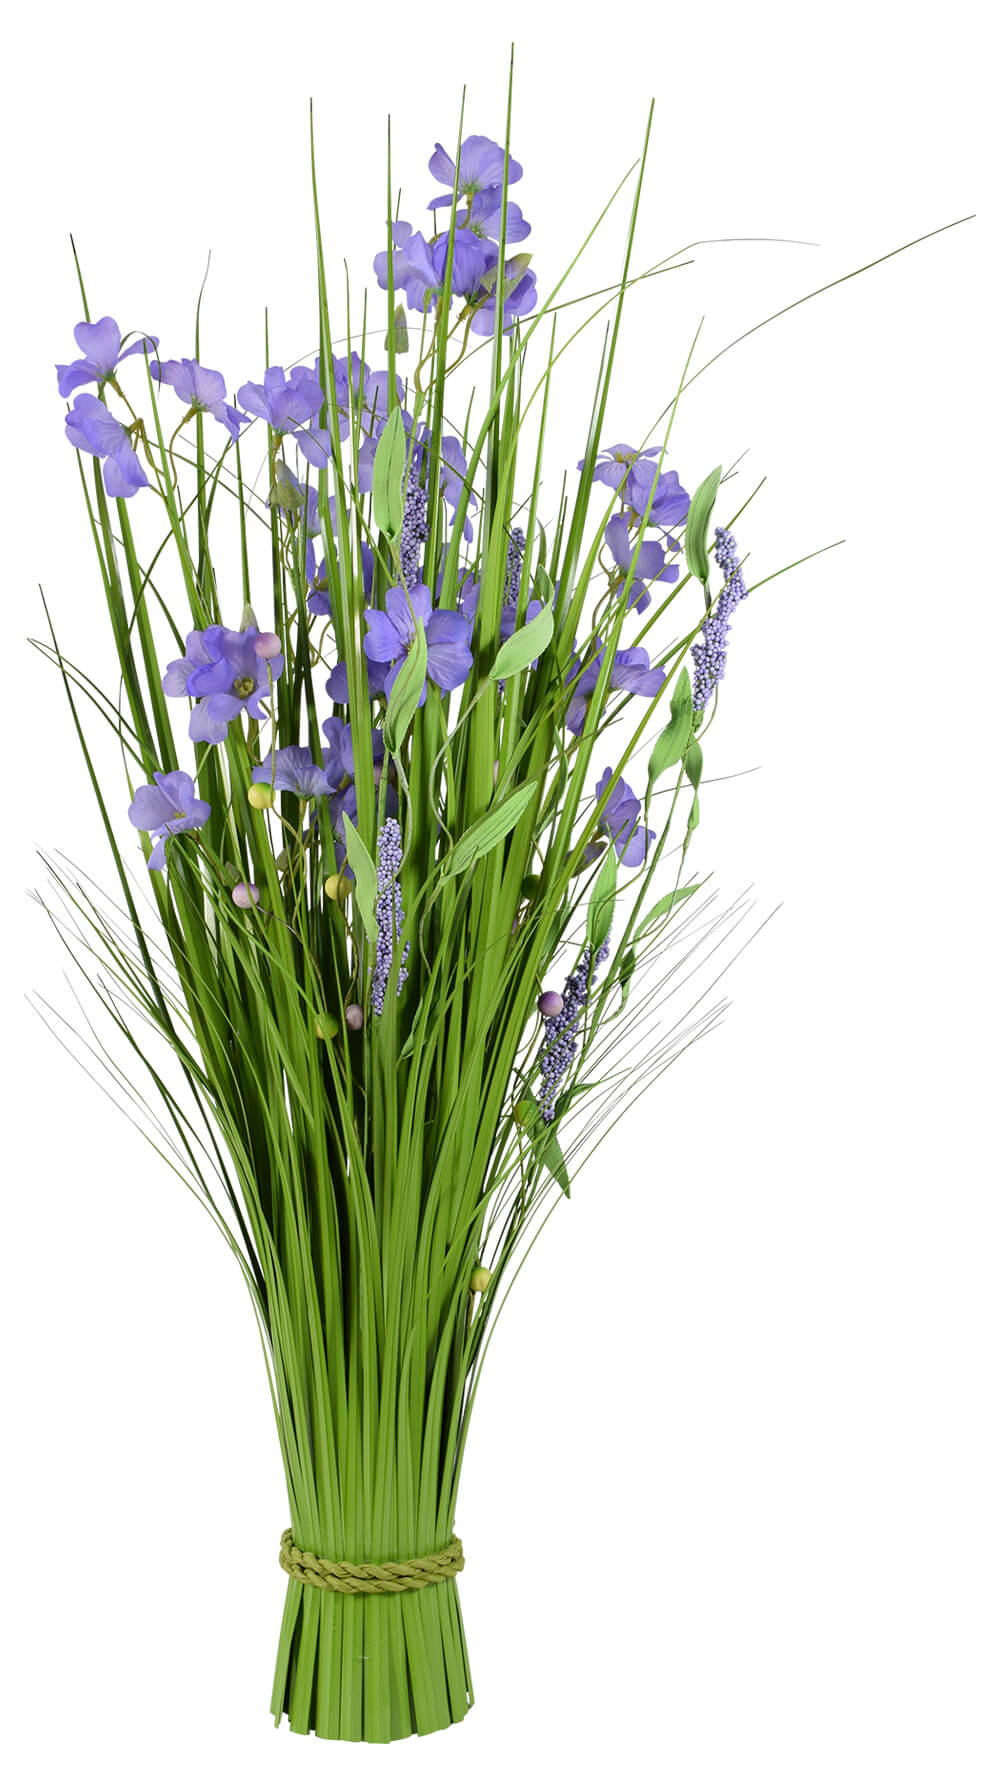 Grass Bundle with Purple Flowers